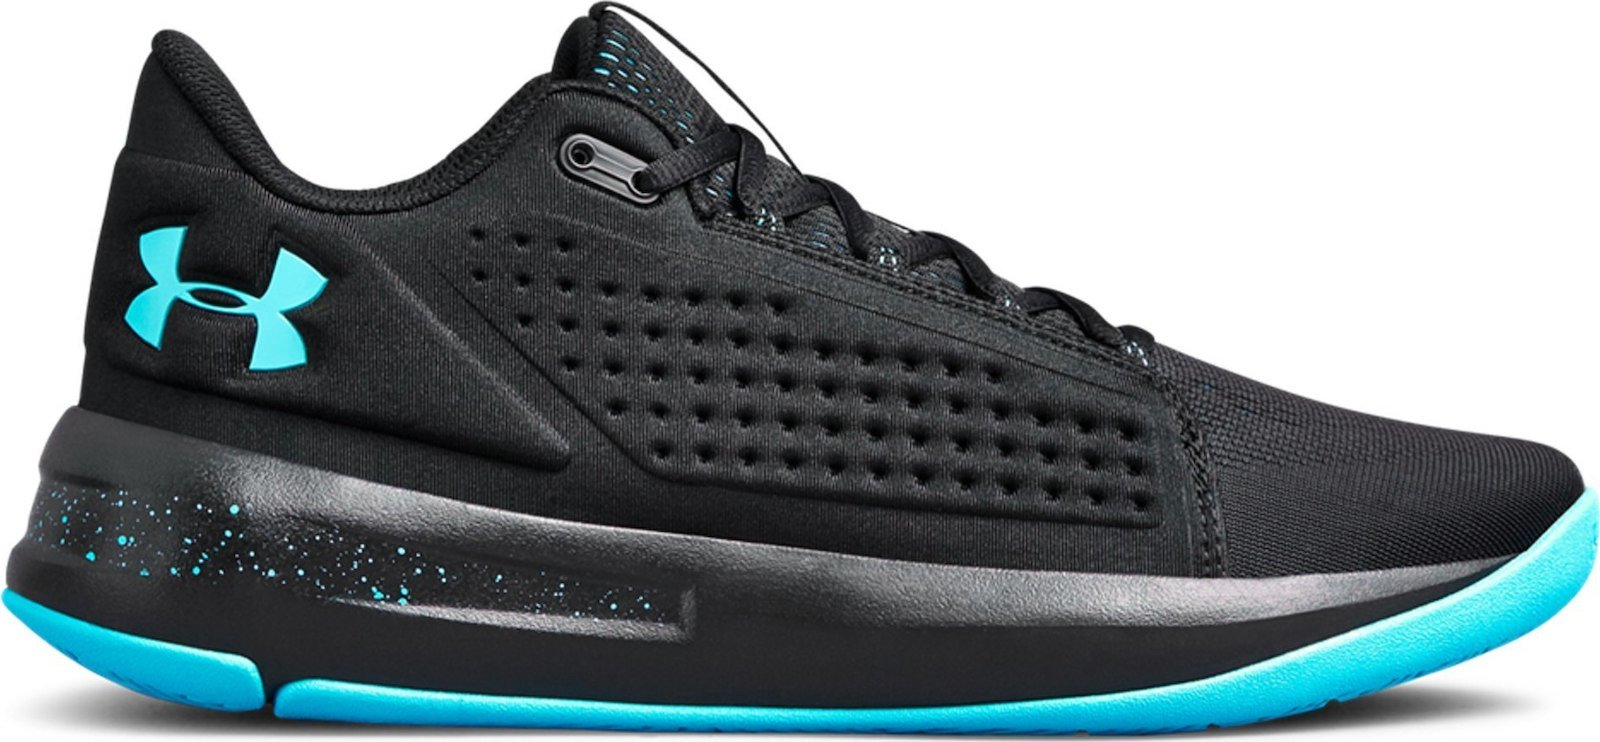 799e28fe6db5 ... Under Armour Torch Low Shoes - 3020621-003 ...